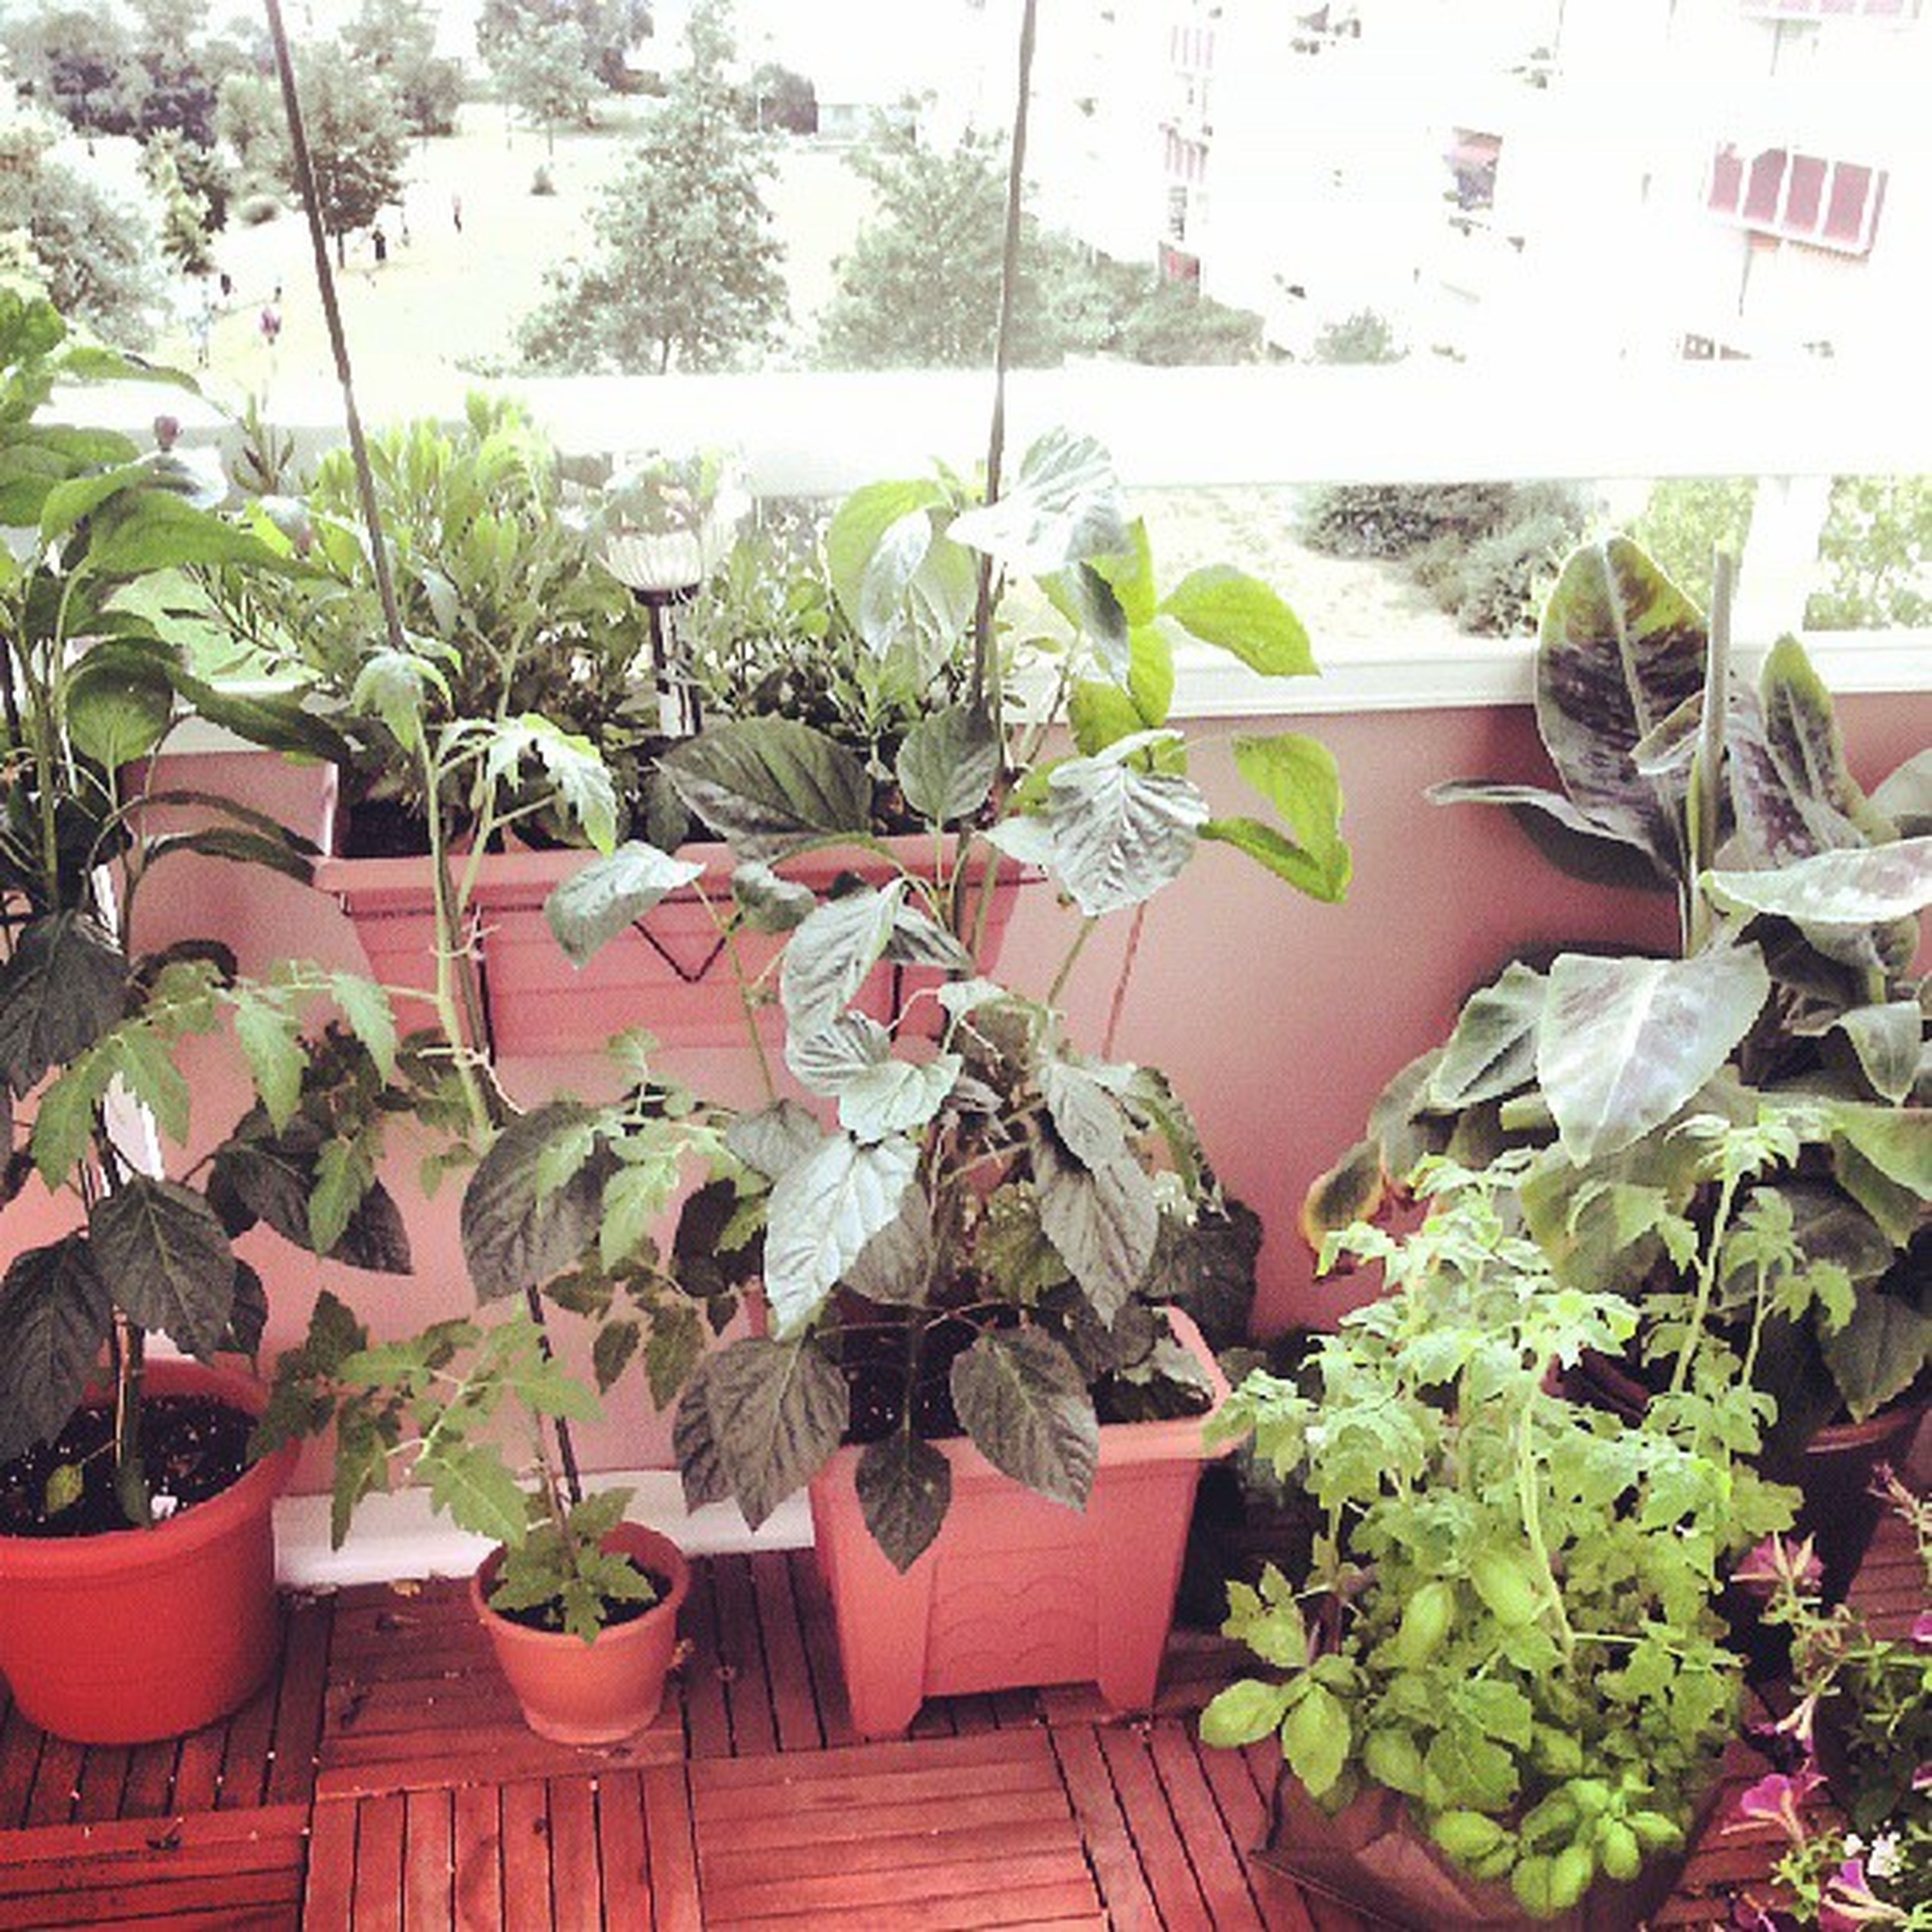 plant, potted plant, growth, leaf, flower, house, wall - building feature, built structure, architecture, green color, building exterior, day, no people, freshness, nature, flower pot, outdoors, wall, close-up, red